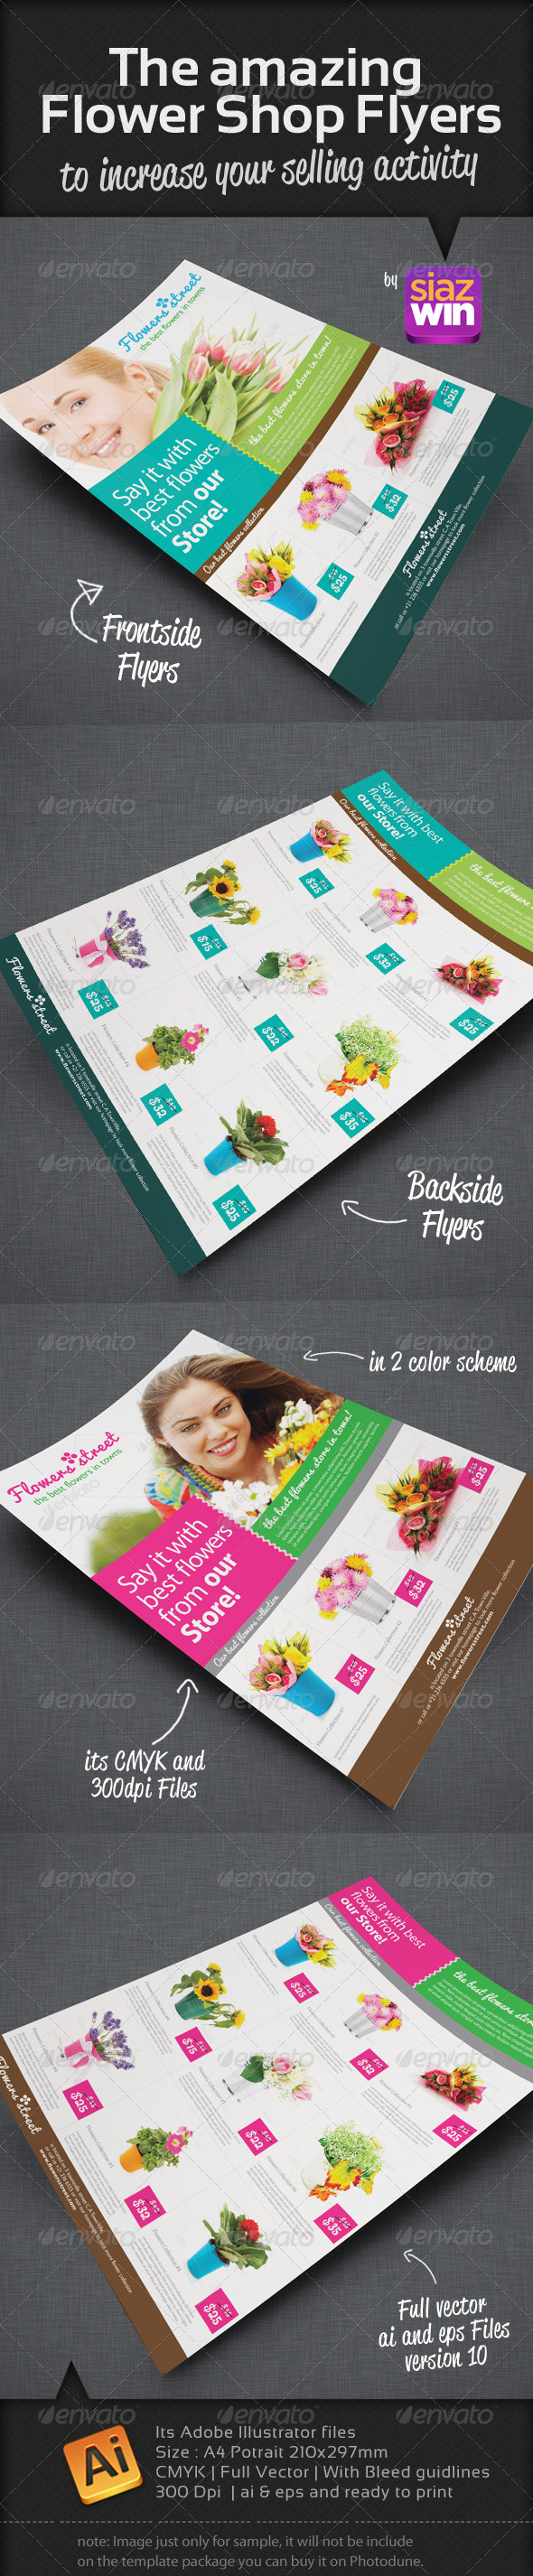 The Amazing Flower Shop Flyers - Commerce Flyers